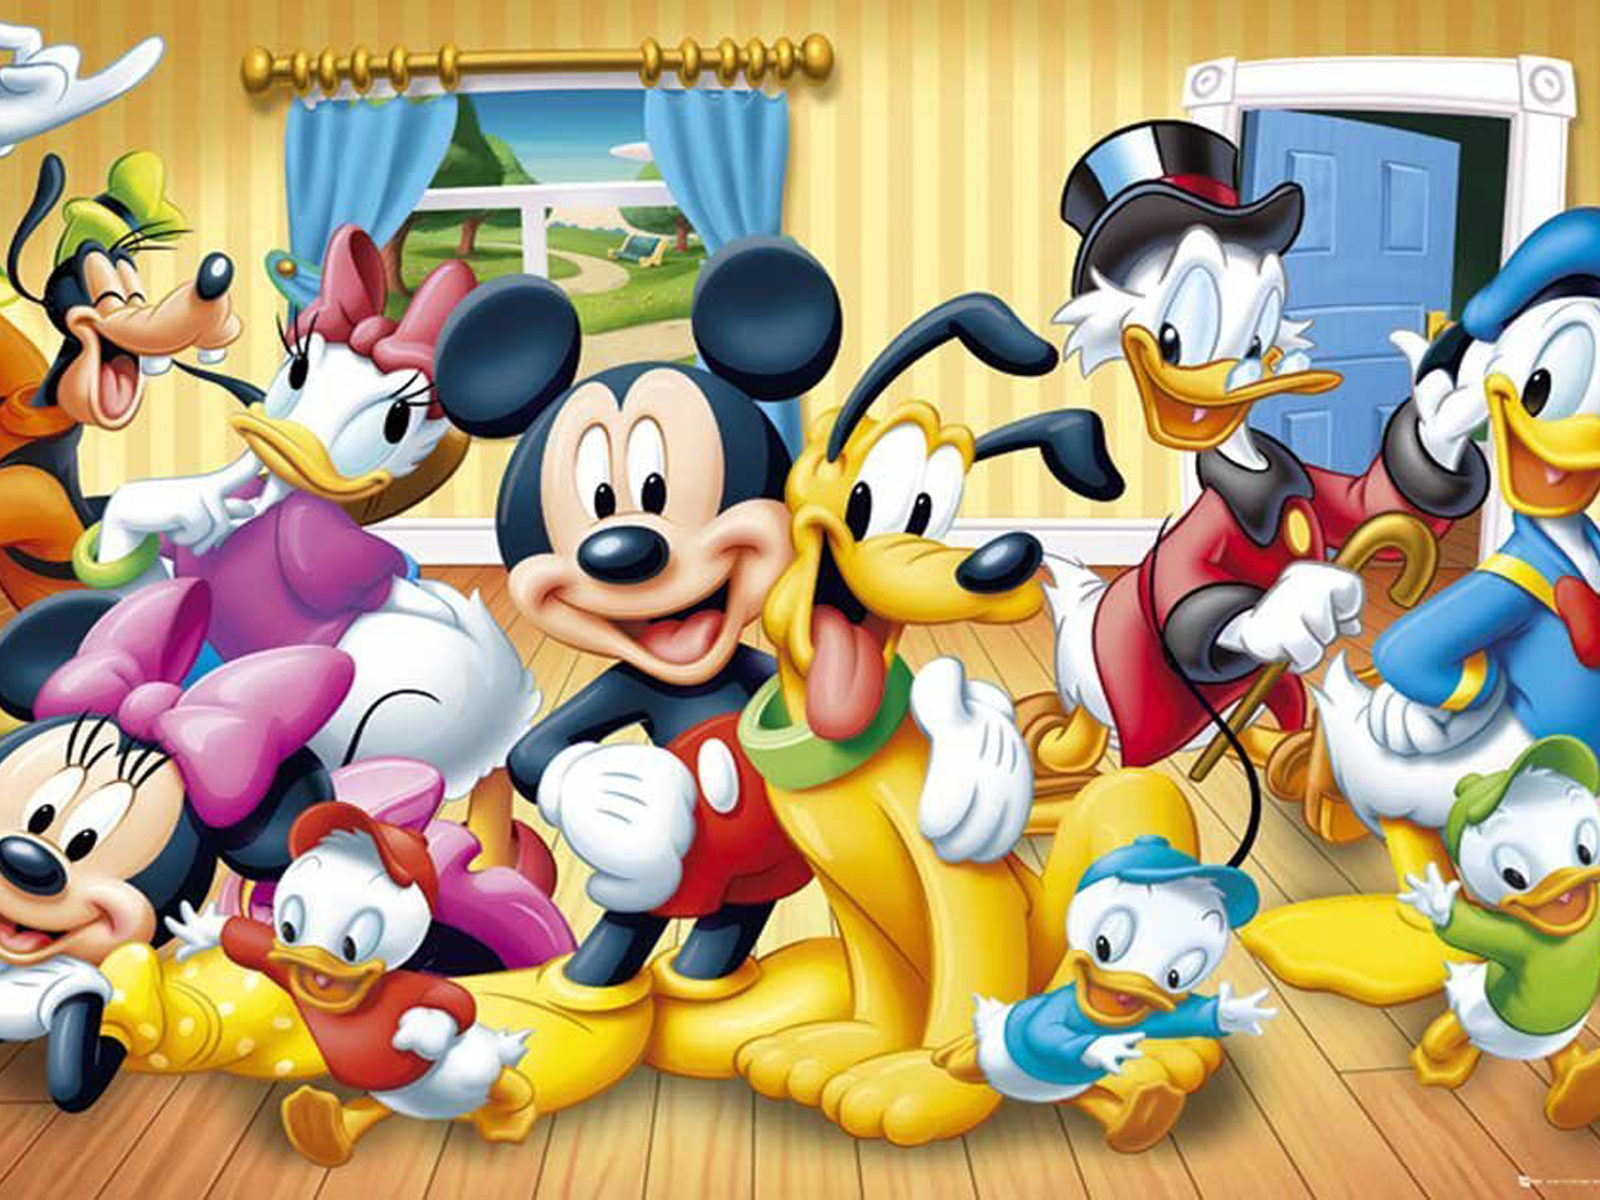 Cartoon Wallpaper Iphone X Walt Disney Poster Mickey Mouse And Friends Wallpaper Hd